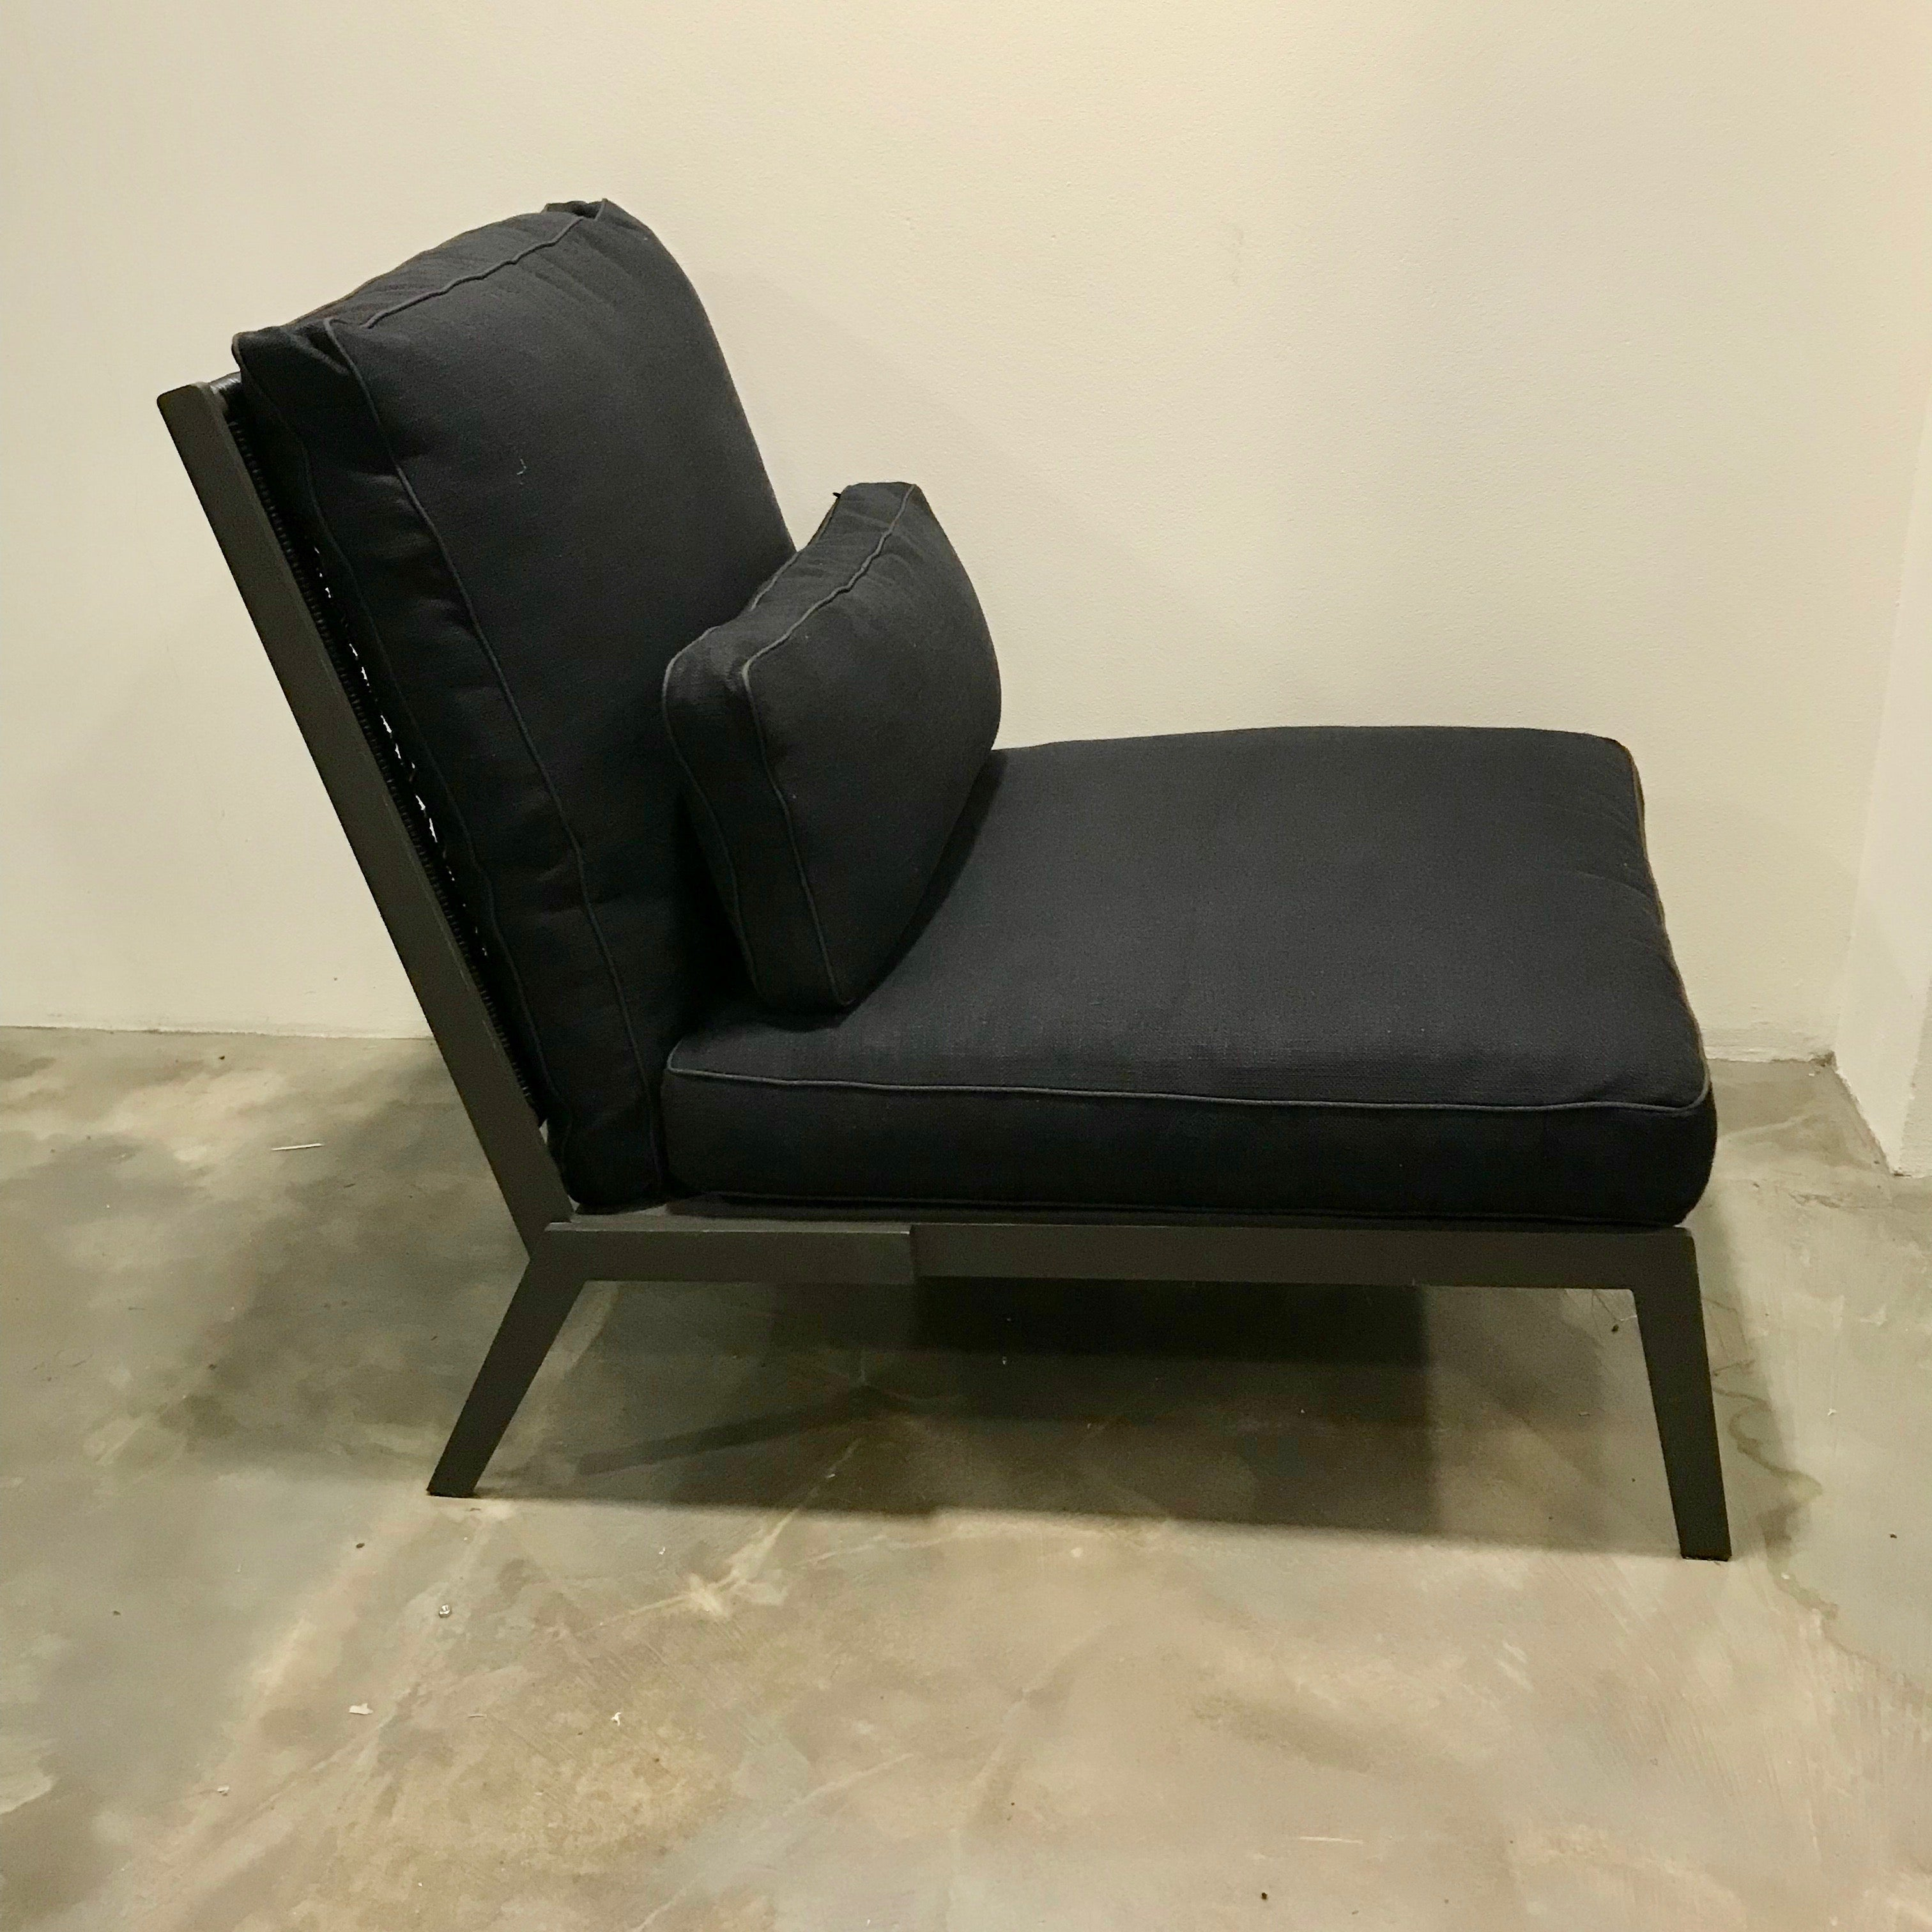 Arc Lounge Chair by Camerich (2 available)